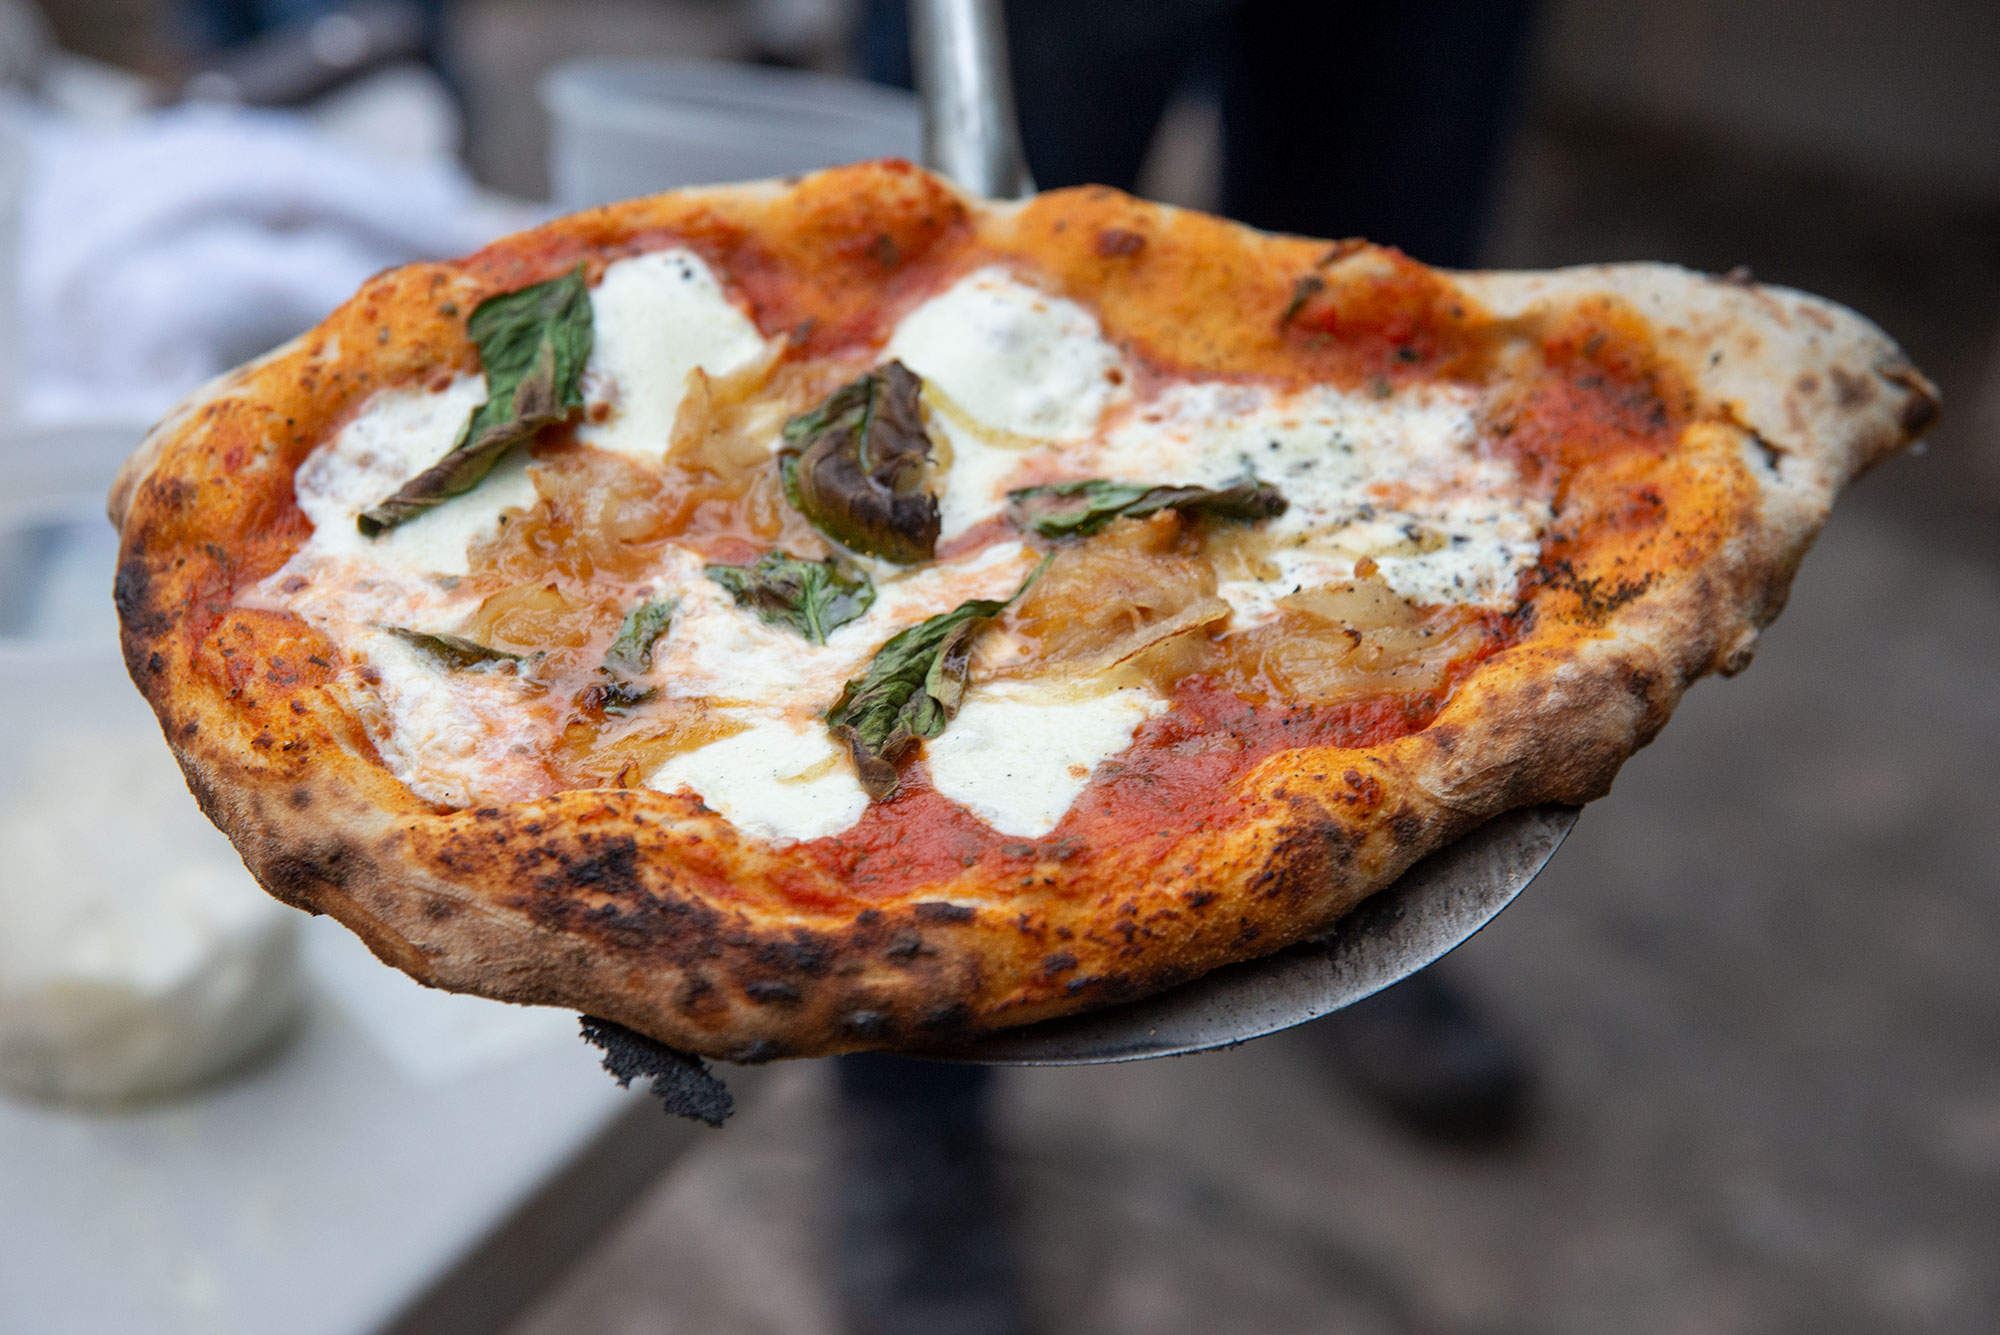 Biscuit Love's Owners Bring Prosciutto-Topped Pizzas to Hillsboro Village Soon